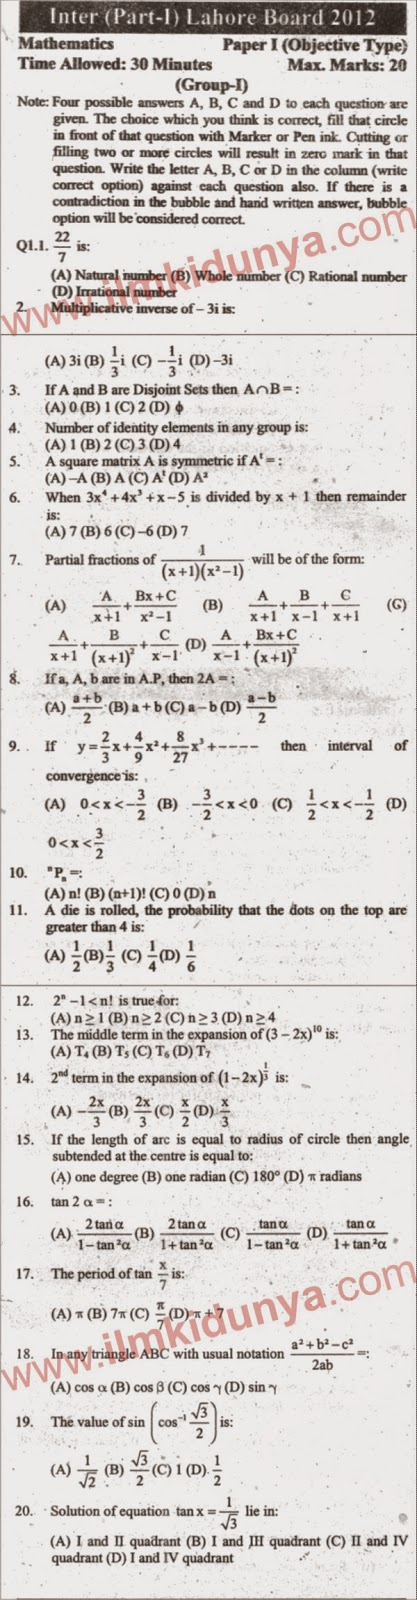 Lahore Board Mathematics Inter Part 1 Past Paper 2012 Objective Group 1